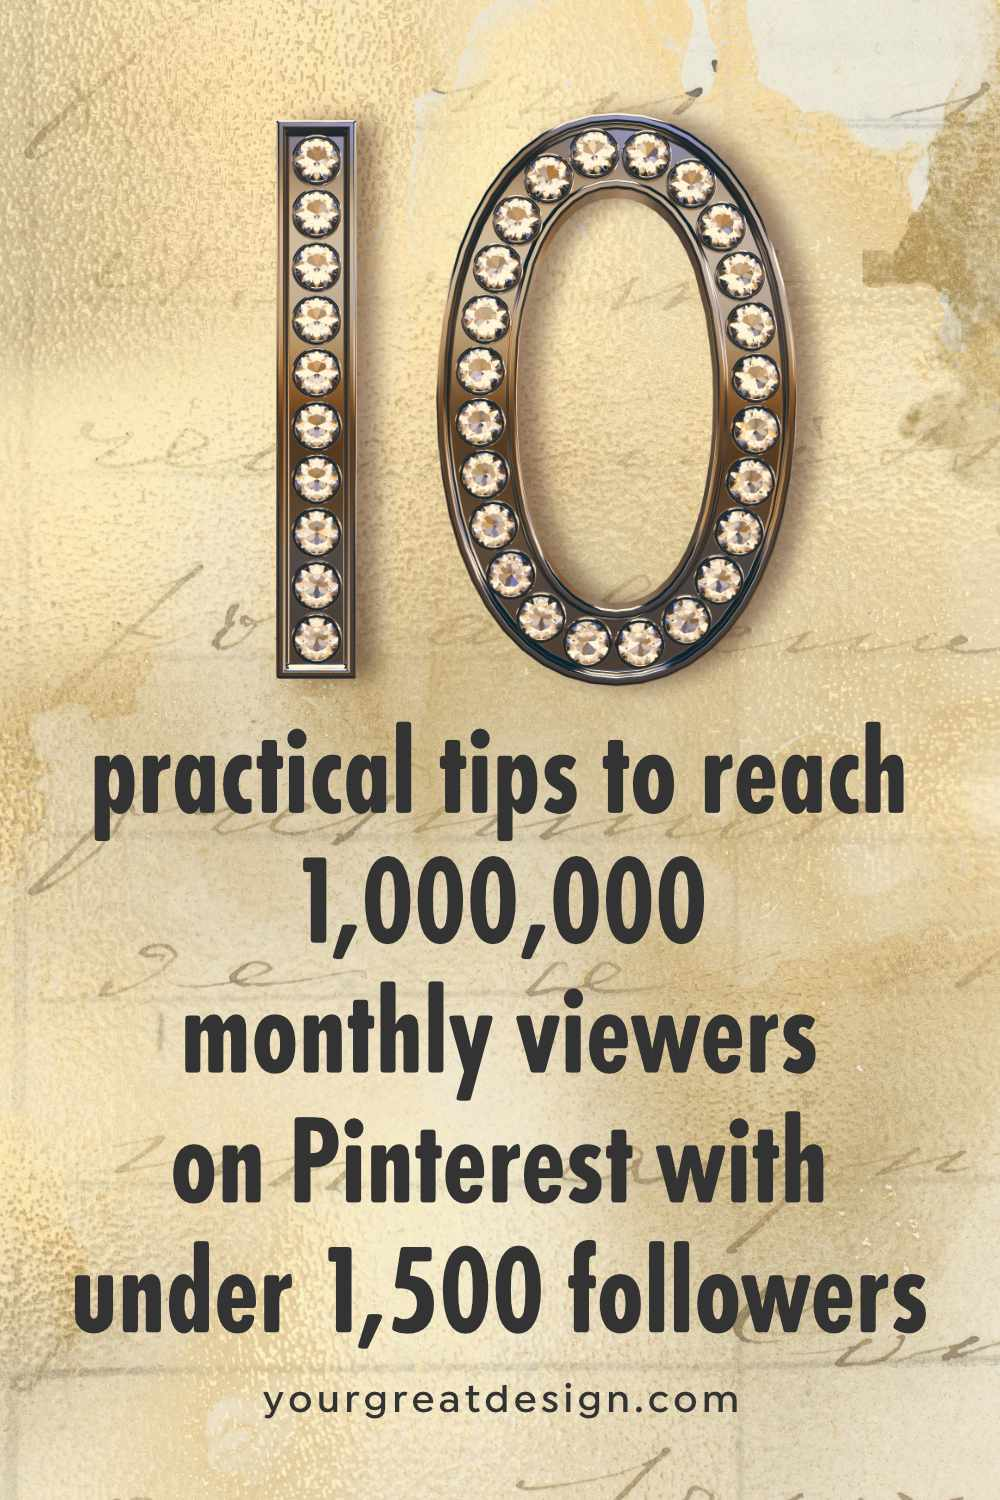 Ten practical tips to reach 1 million monthly viewers on Pinterest with under 1,500 followers